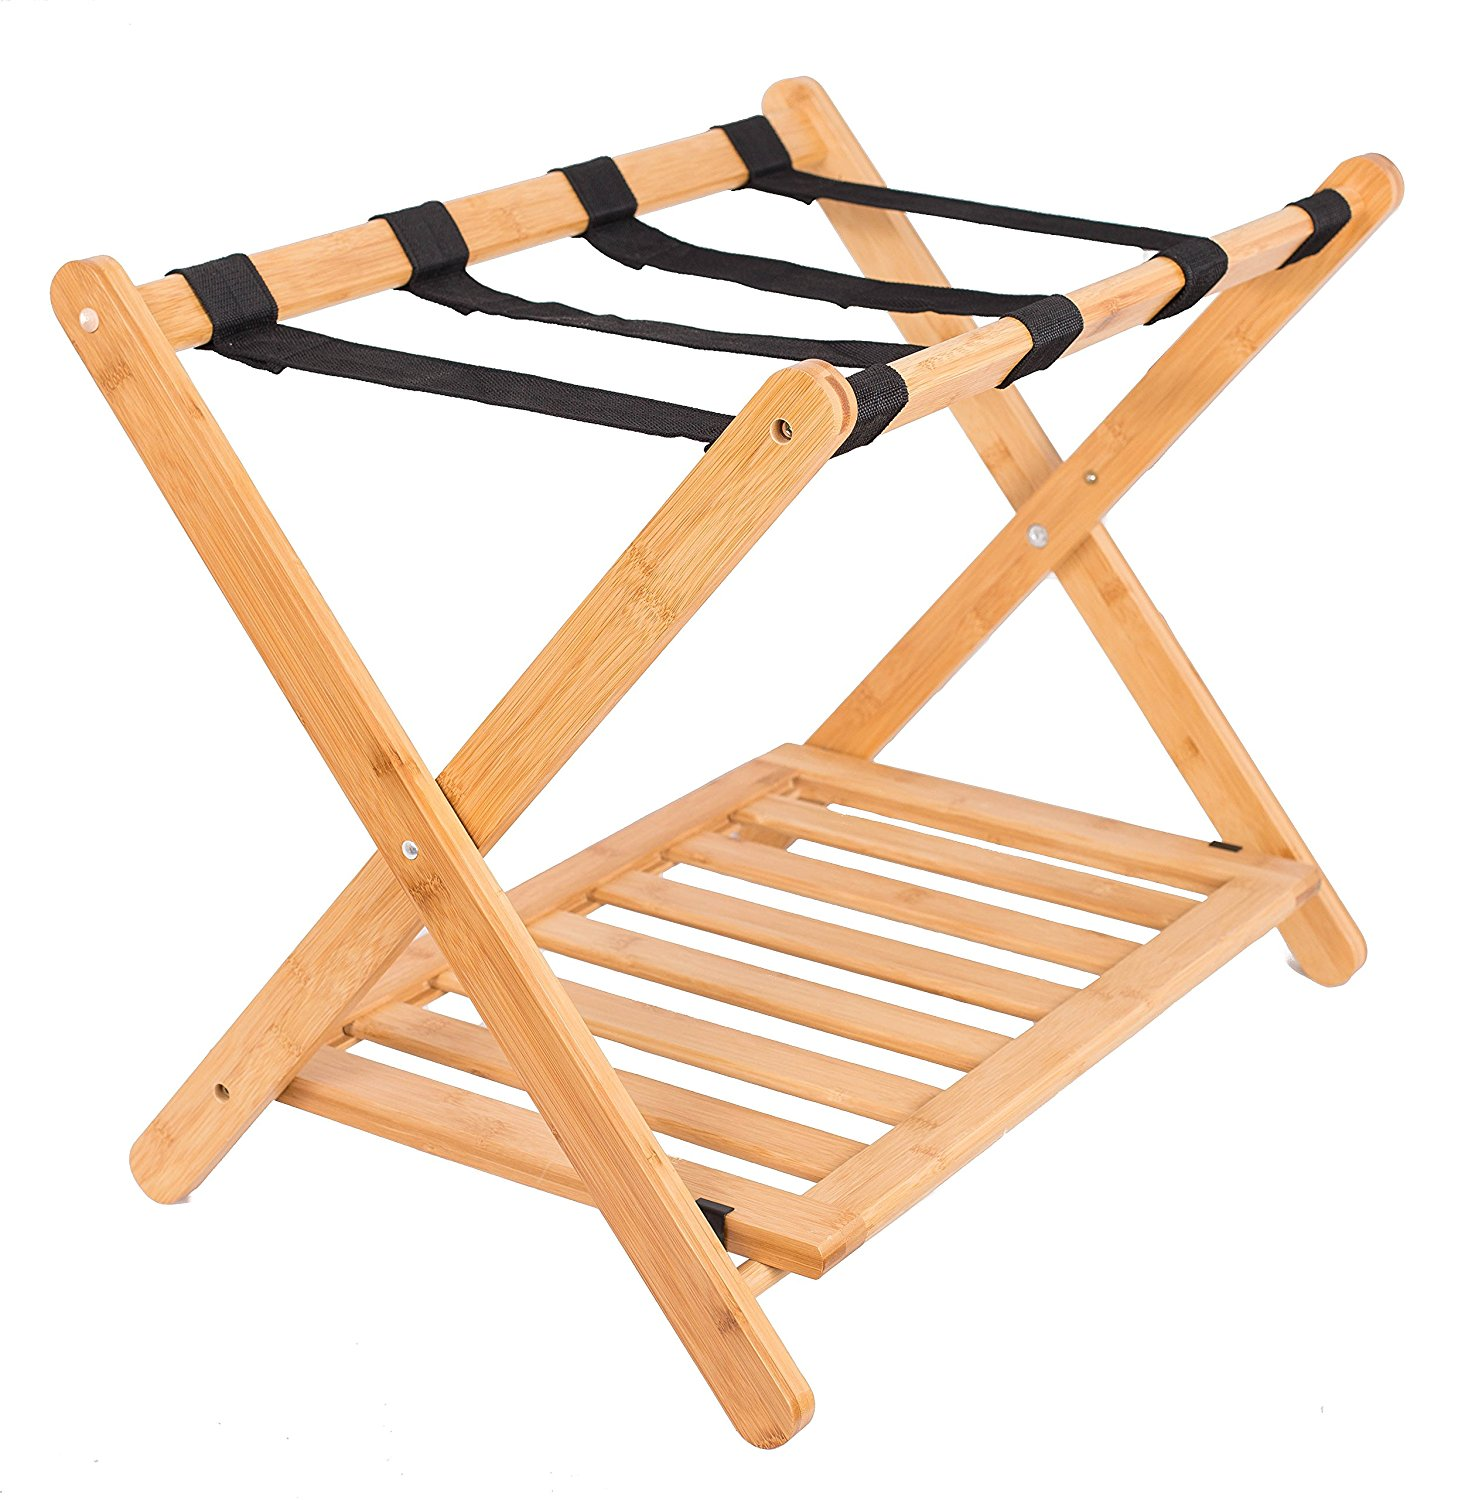 bamboo folding luggage rack with shoe shelf bedroom guest room suitcase home organization hotel luggage rack buy luggage rack hotel luggage